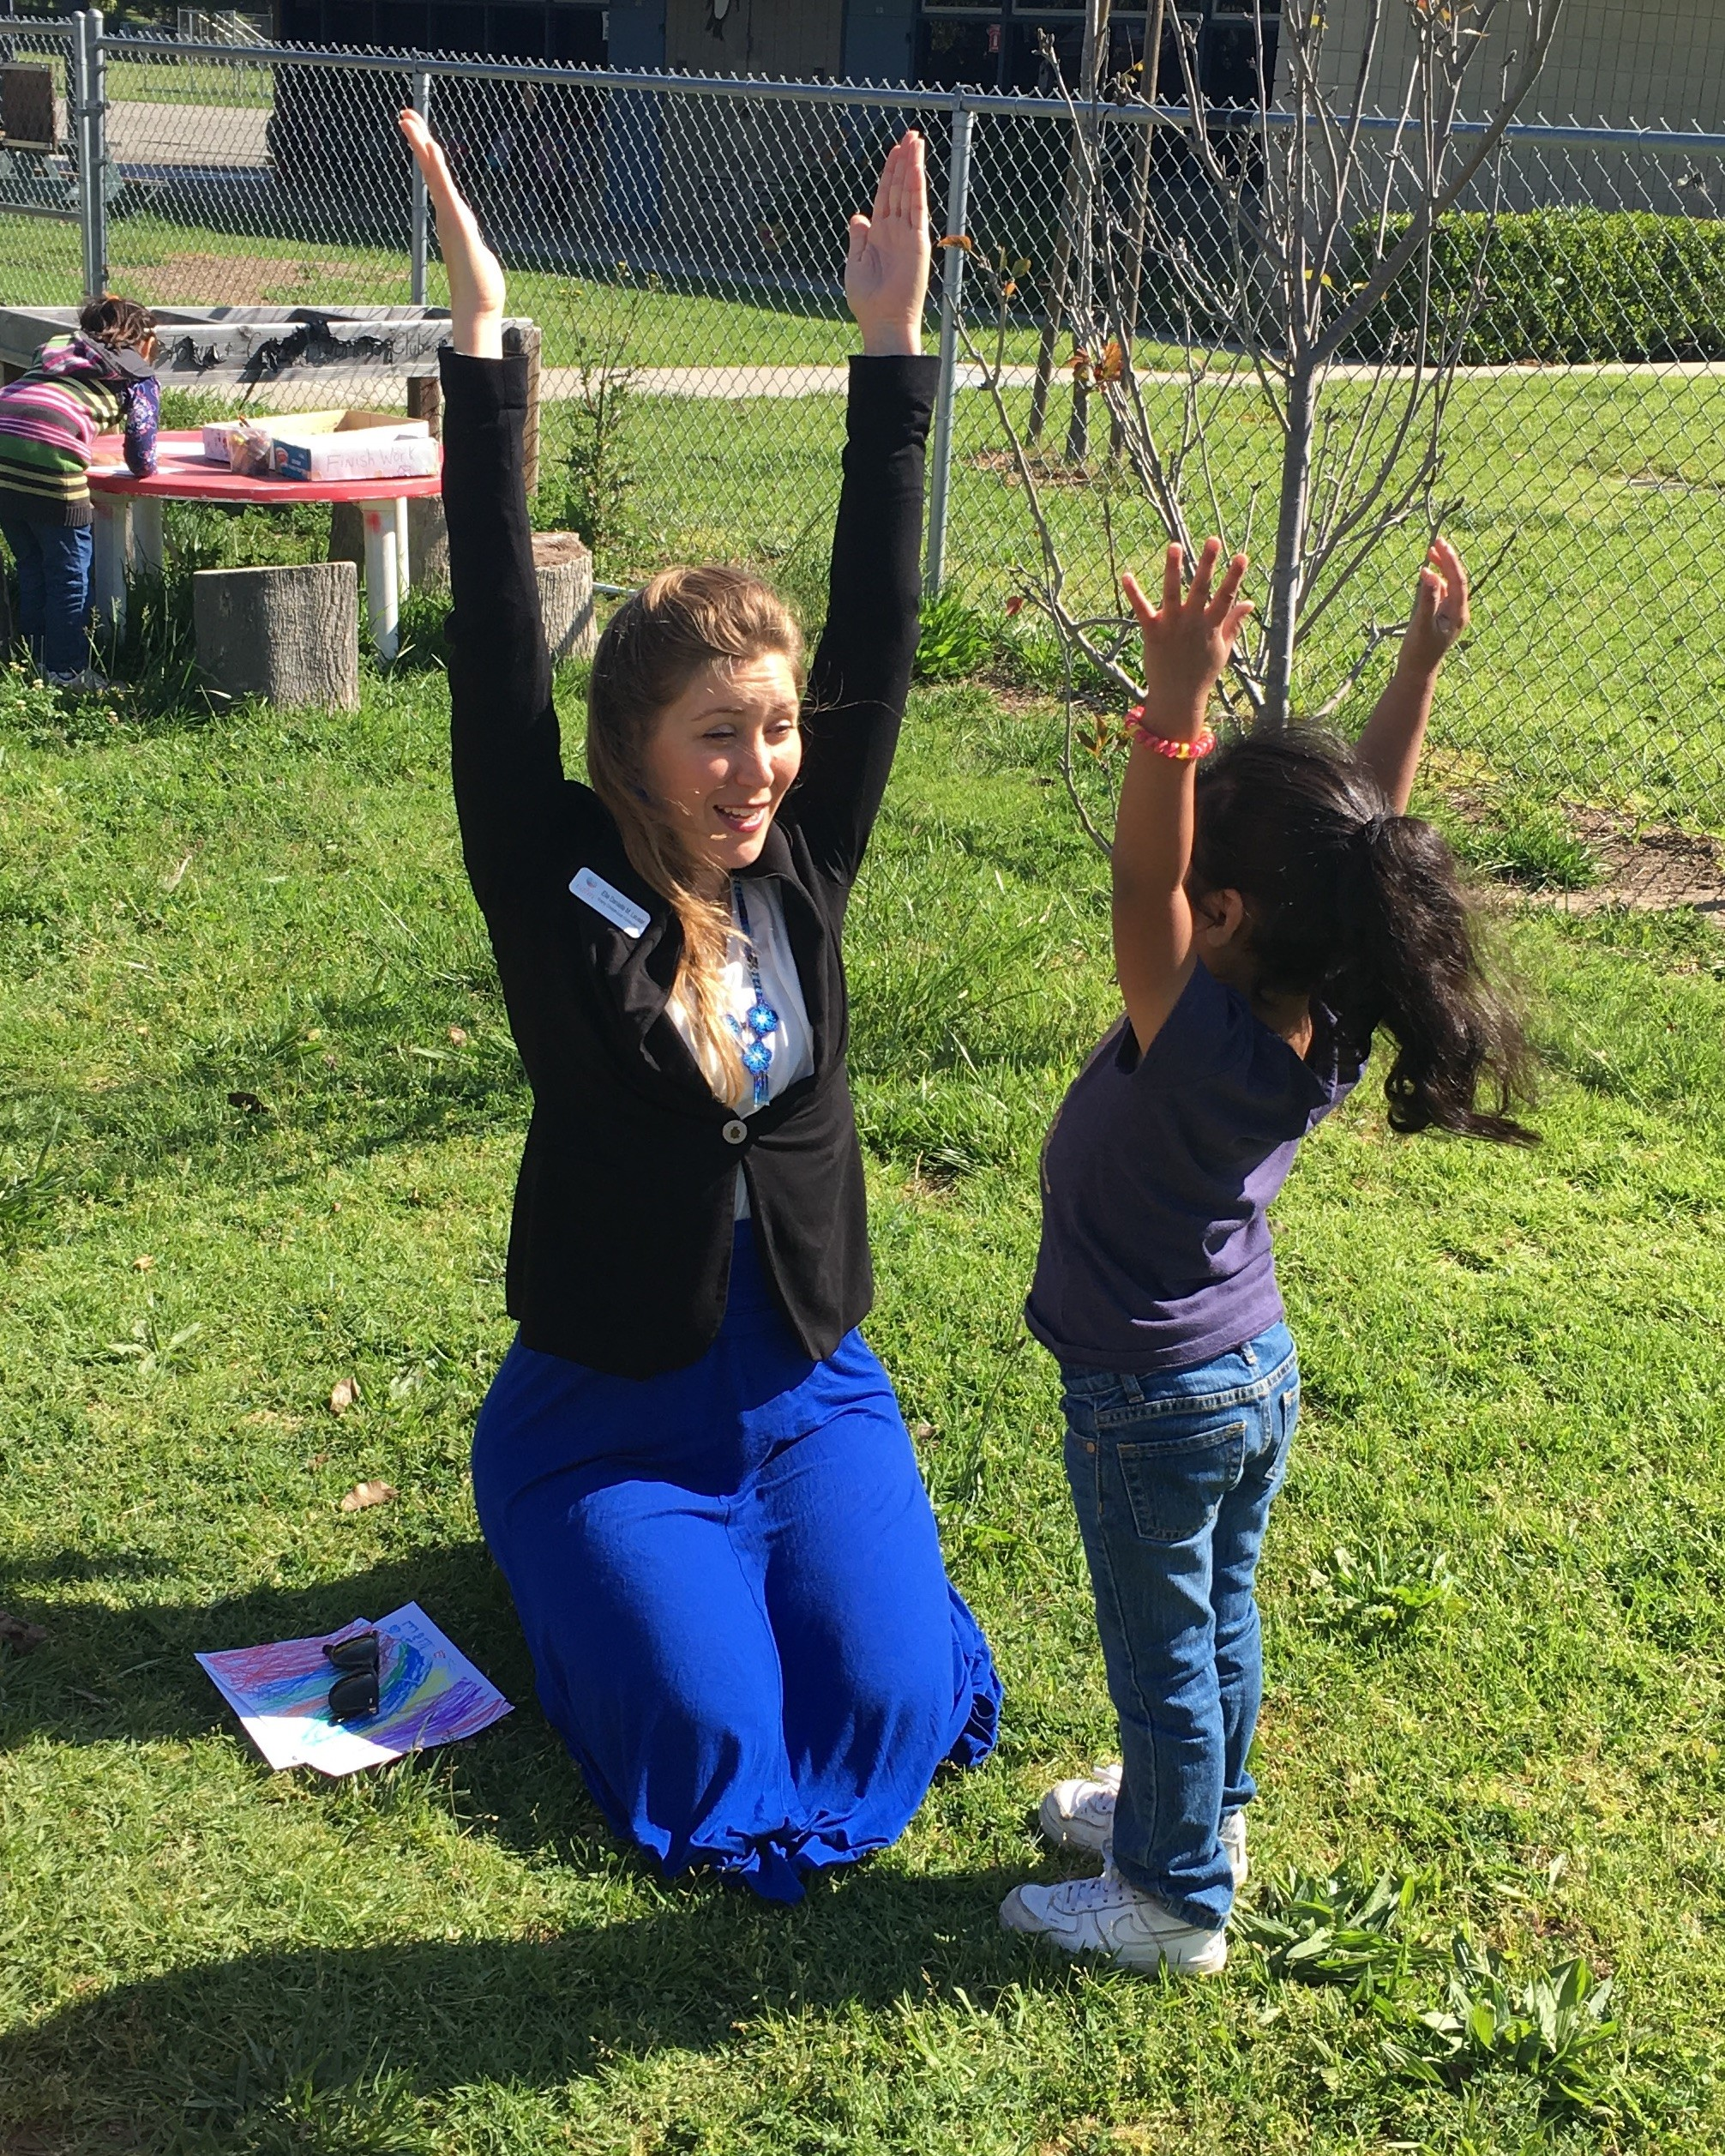 Counselor and girl with arms raised to the sky